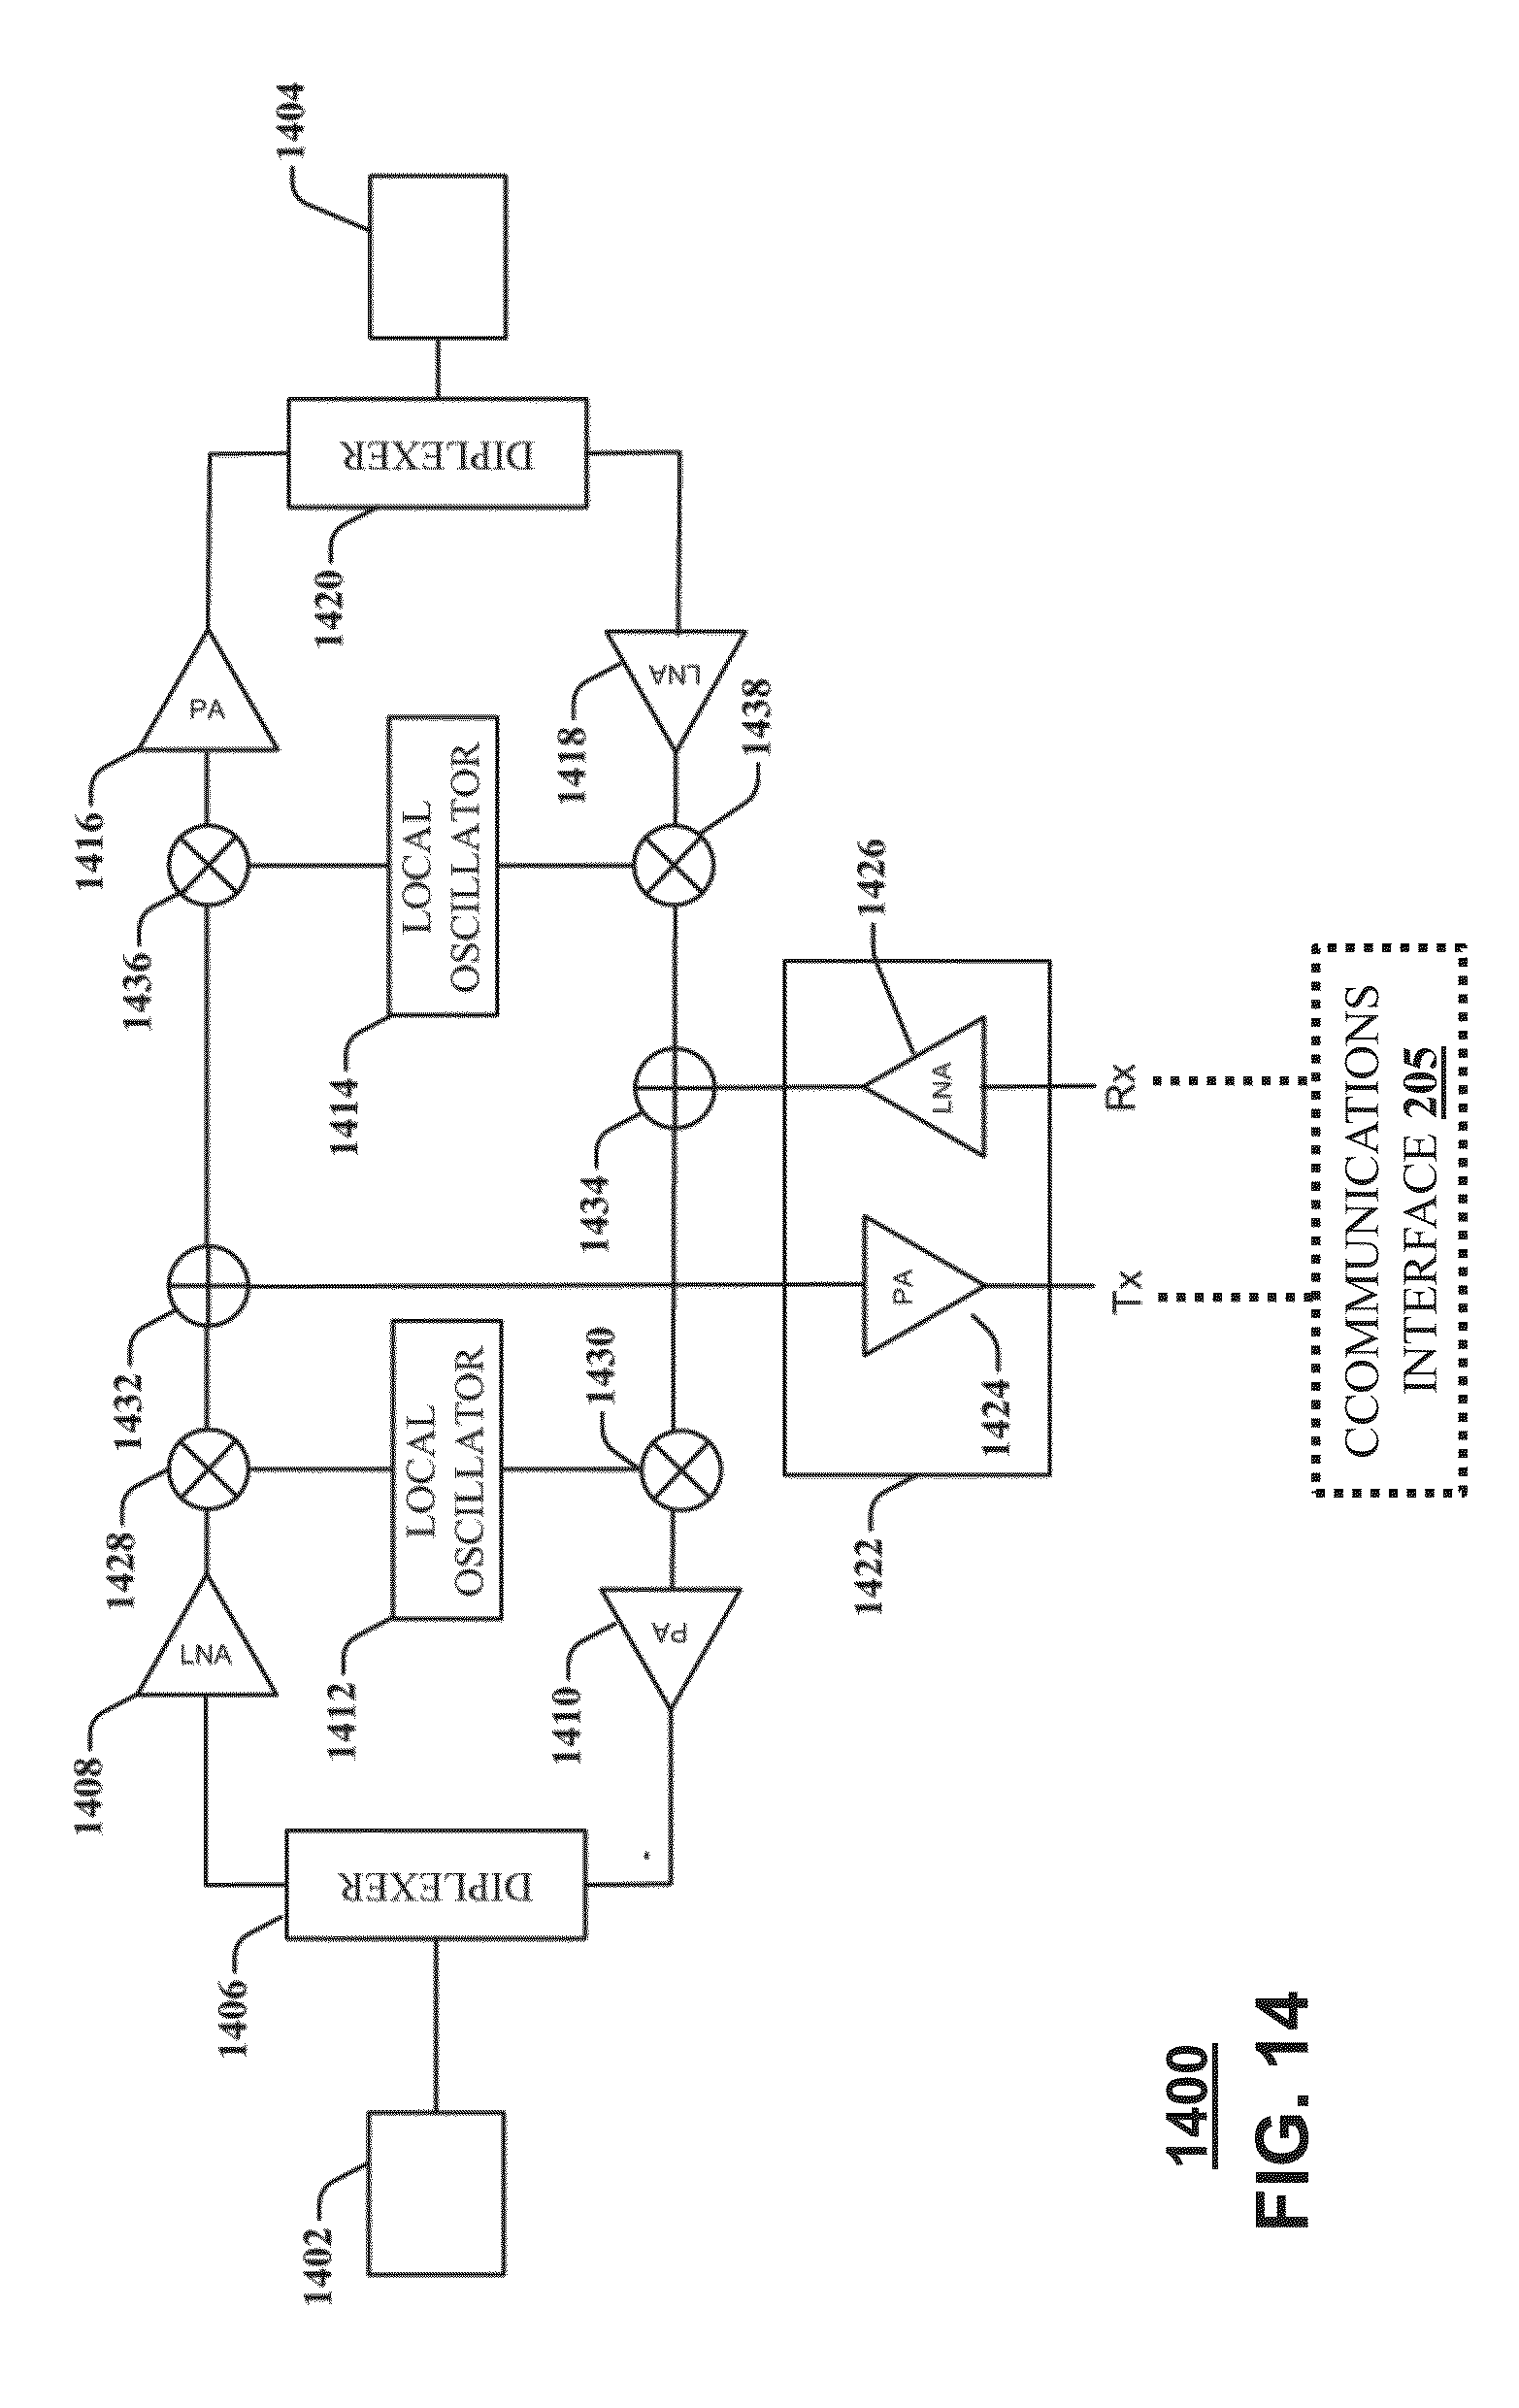 Us9461706b1 Method And Apparatus For Exchanging Communication 1959 Practical Monolithic Integrated Circuit Concept Patented The Signals Google Patents